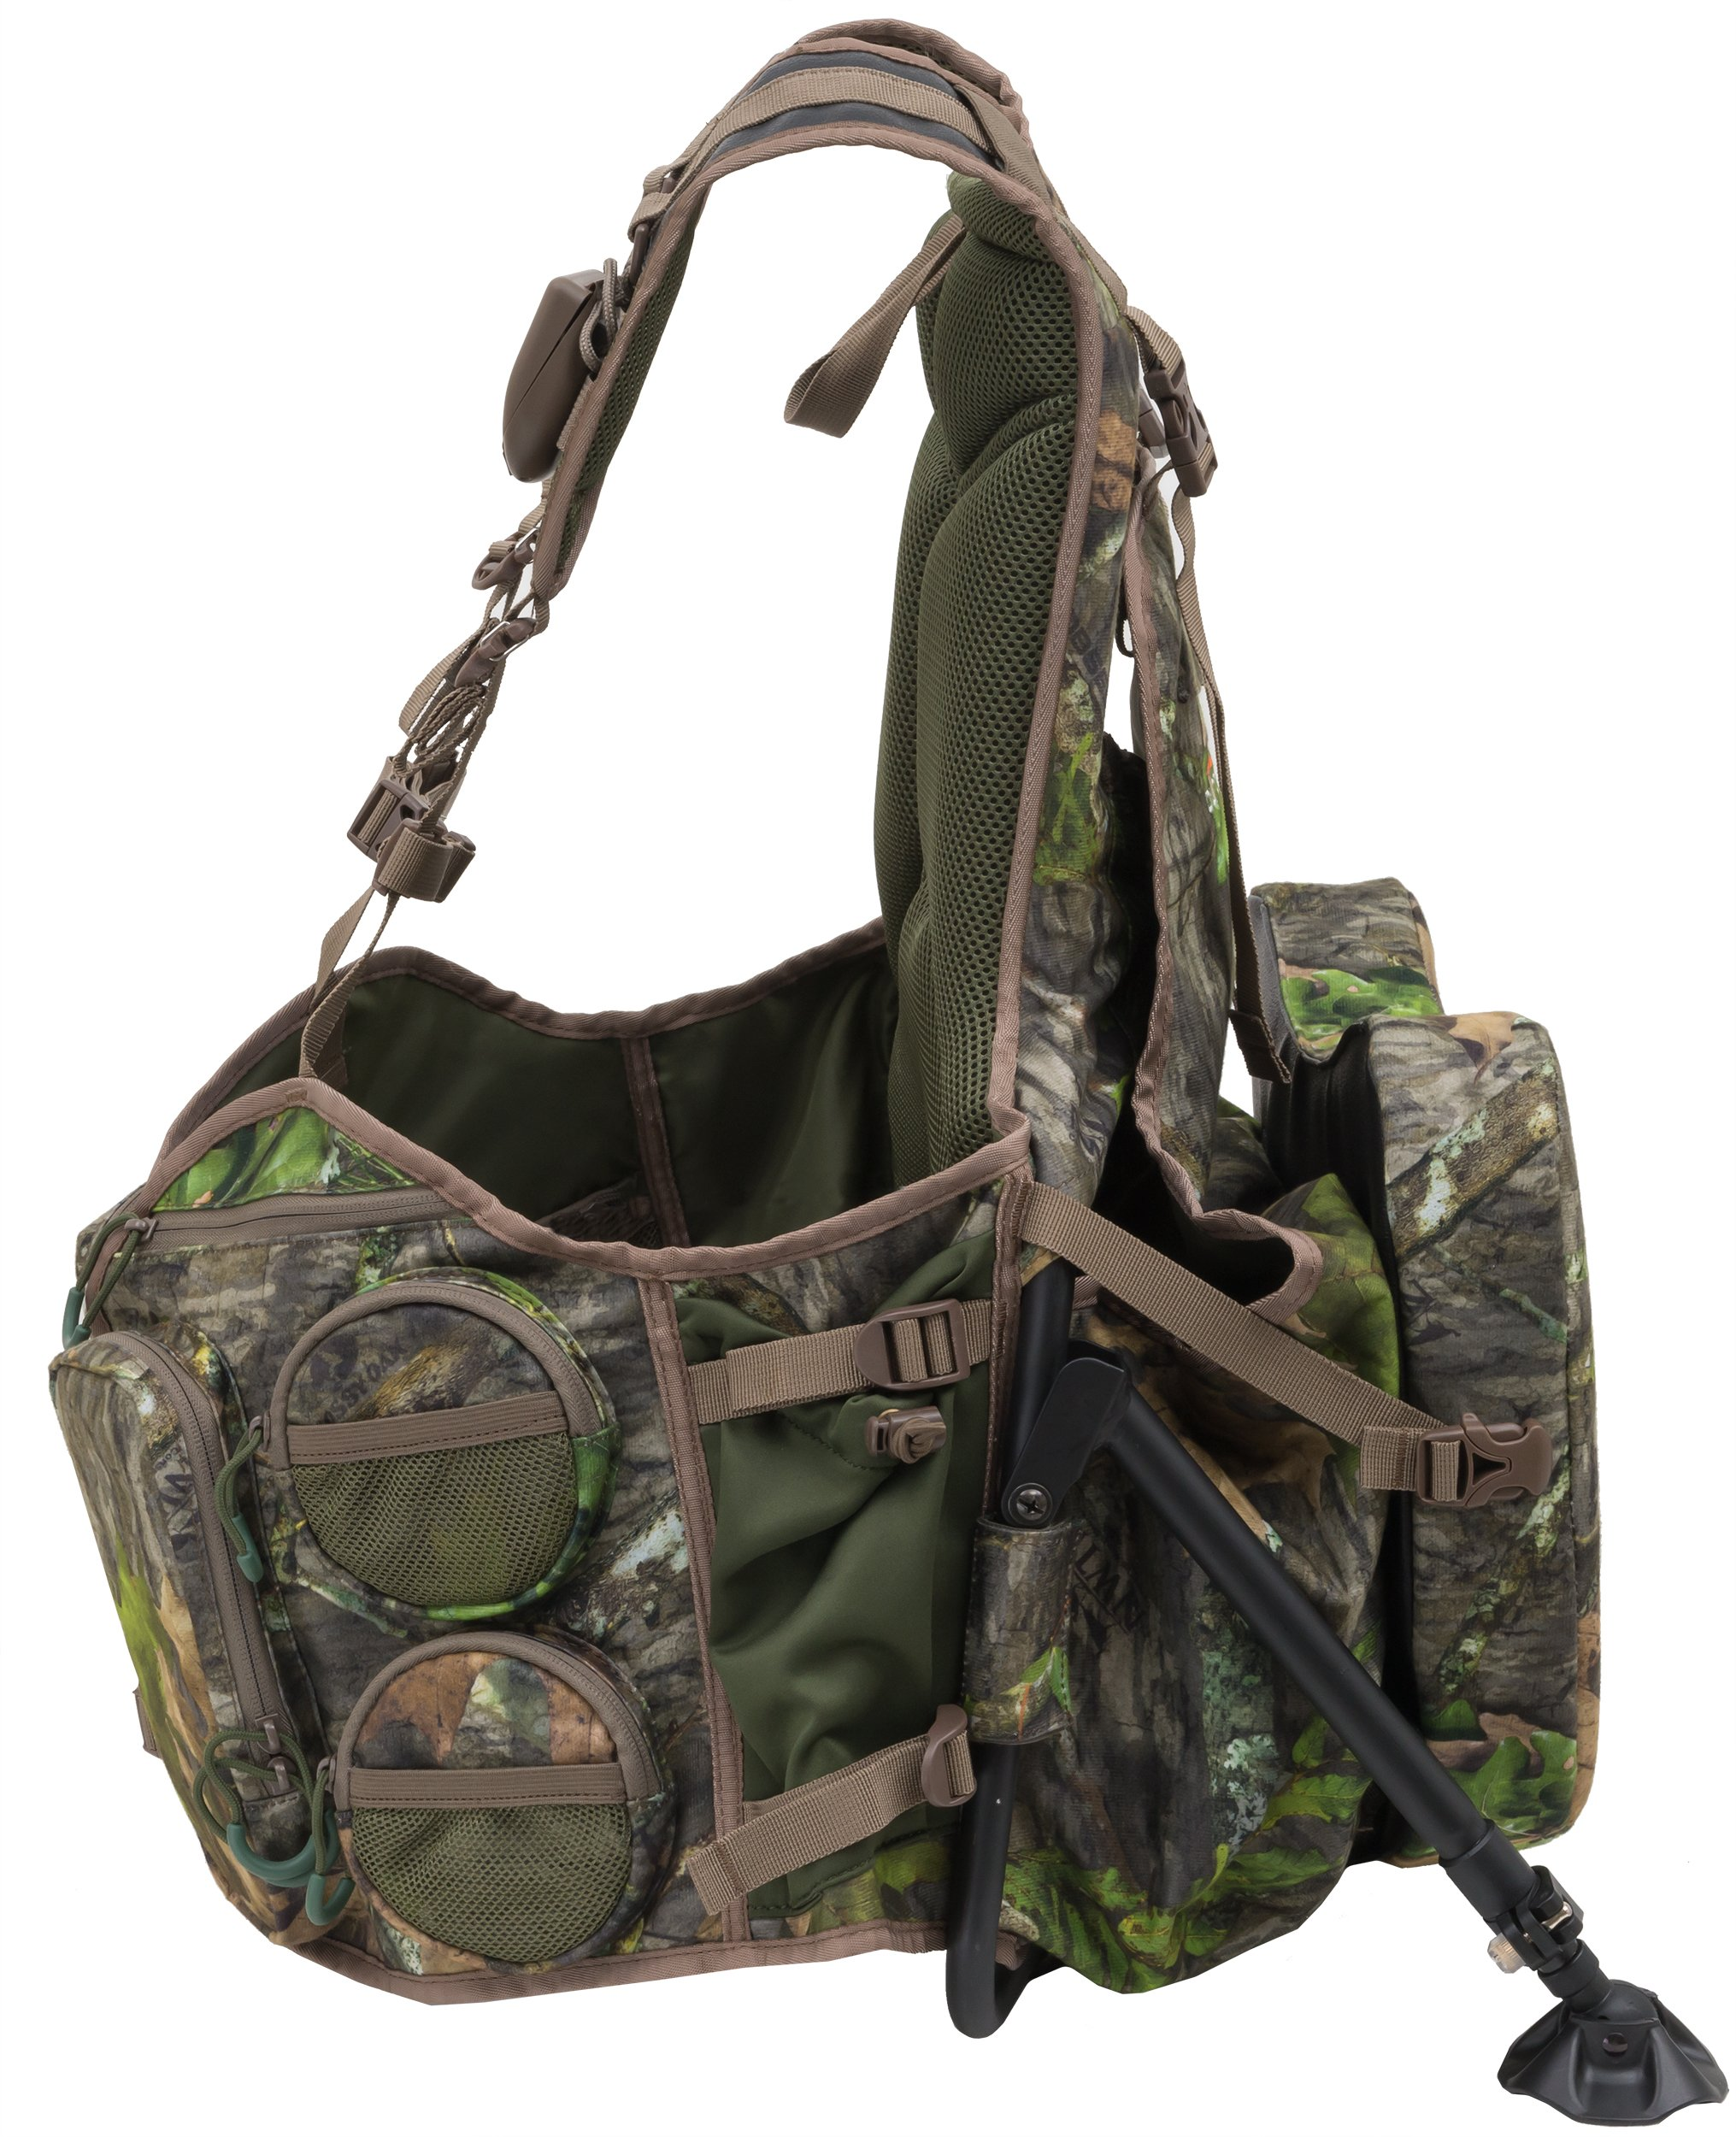 ALPS OutdoorZ NWTF Grand Slam Turkey Vest Standard, Mossy Oak Obsession by ALPS OutdoorZ (Image #2)